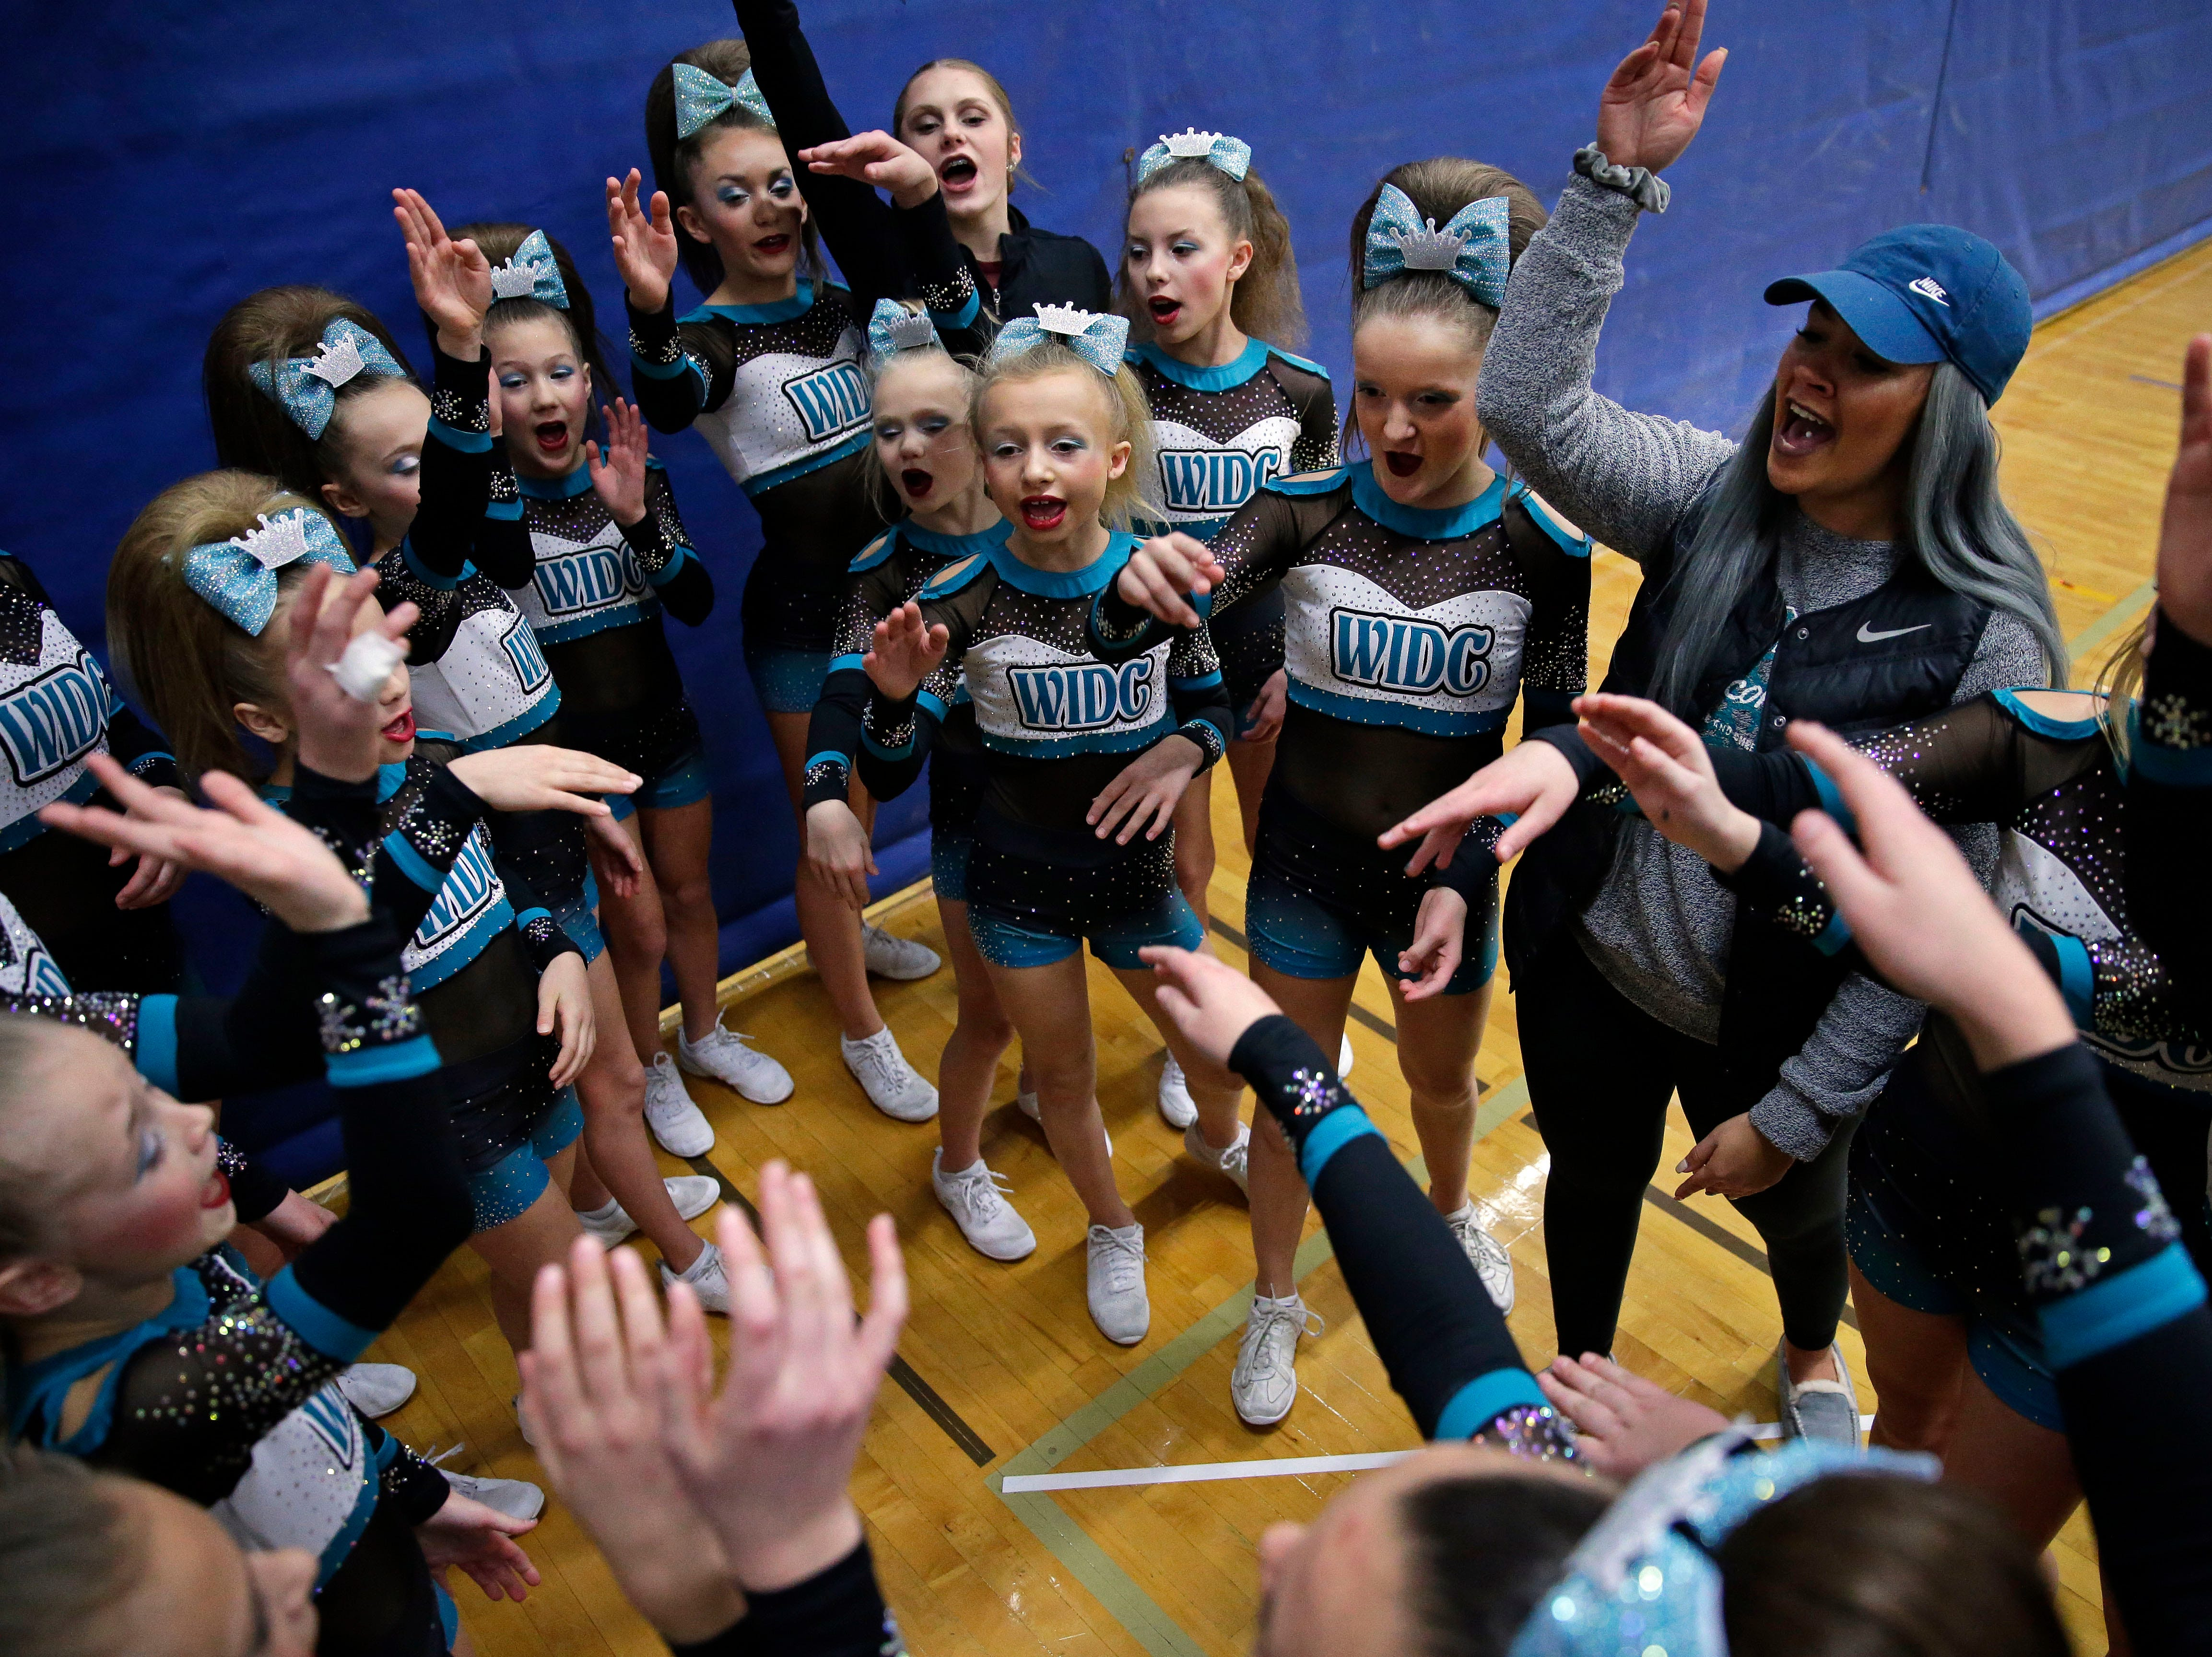 The WIDC Hailstorm team gets ready to take the floor as the Lightning Bolt Explosion Cheer and Dance competition takes place Saturday, January 5, 2019, at Appleton North High School in Appleton, Wis.Ron Page/USA TODAY NETWORK-Wisconsin